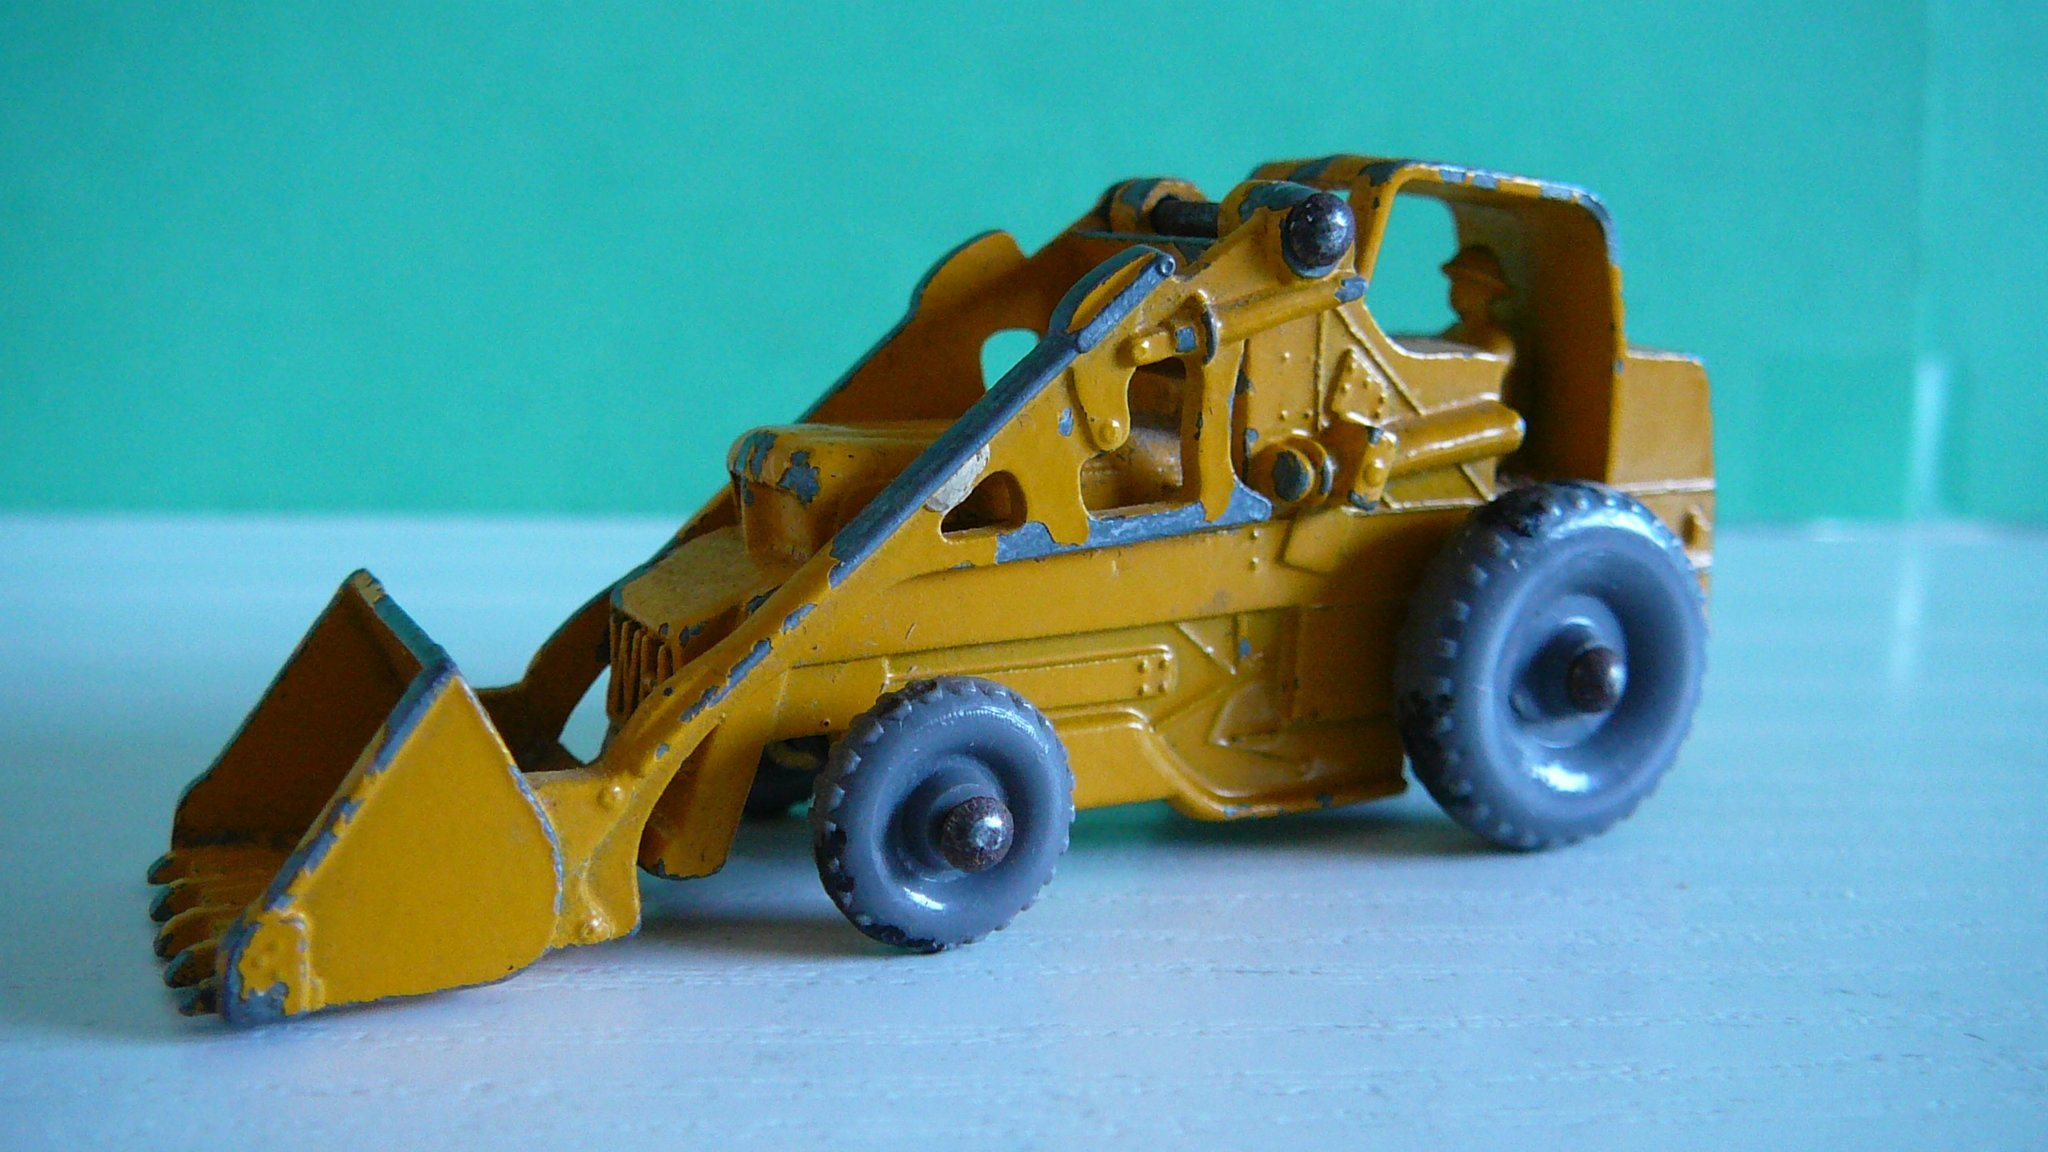 Weatherill Hydraulic Excavator - Matchbox Lesney No. 24b